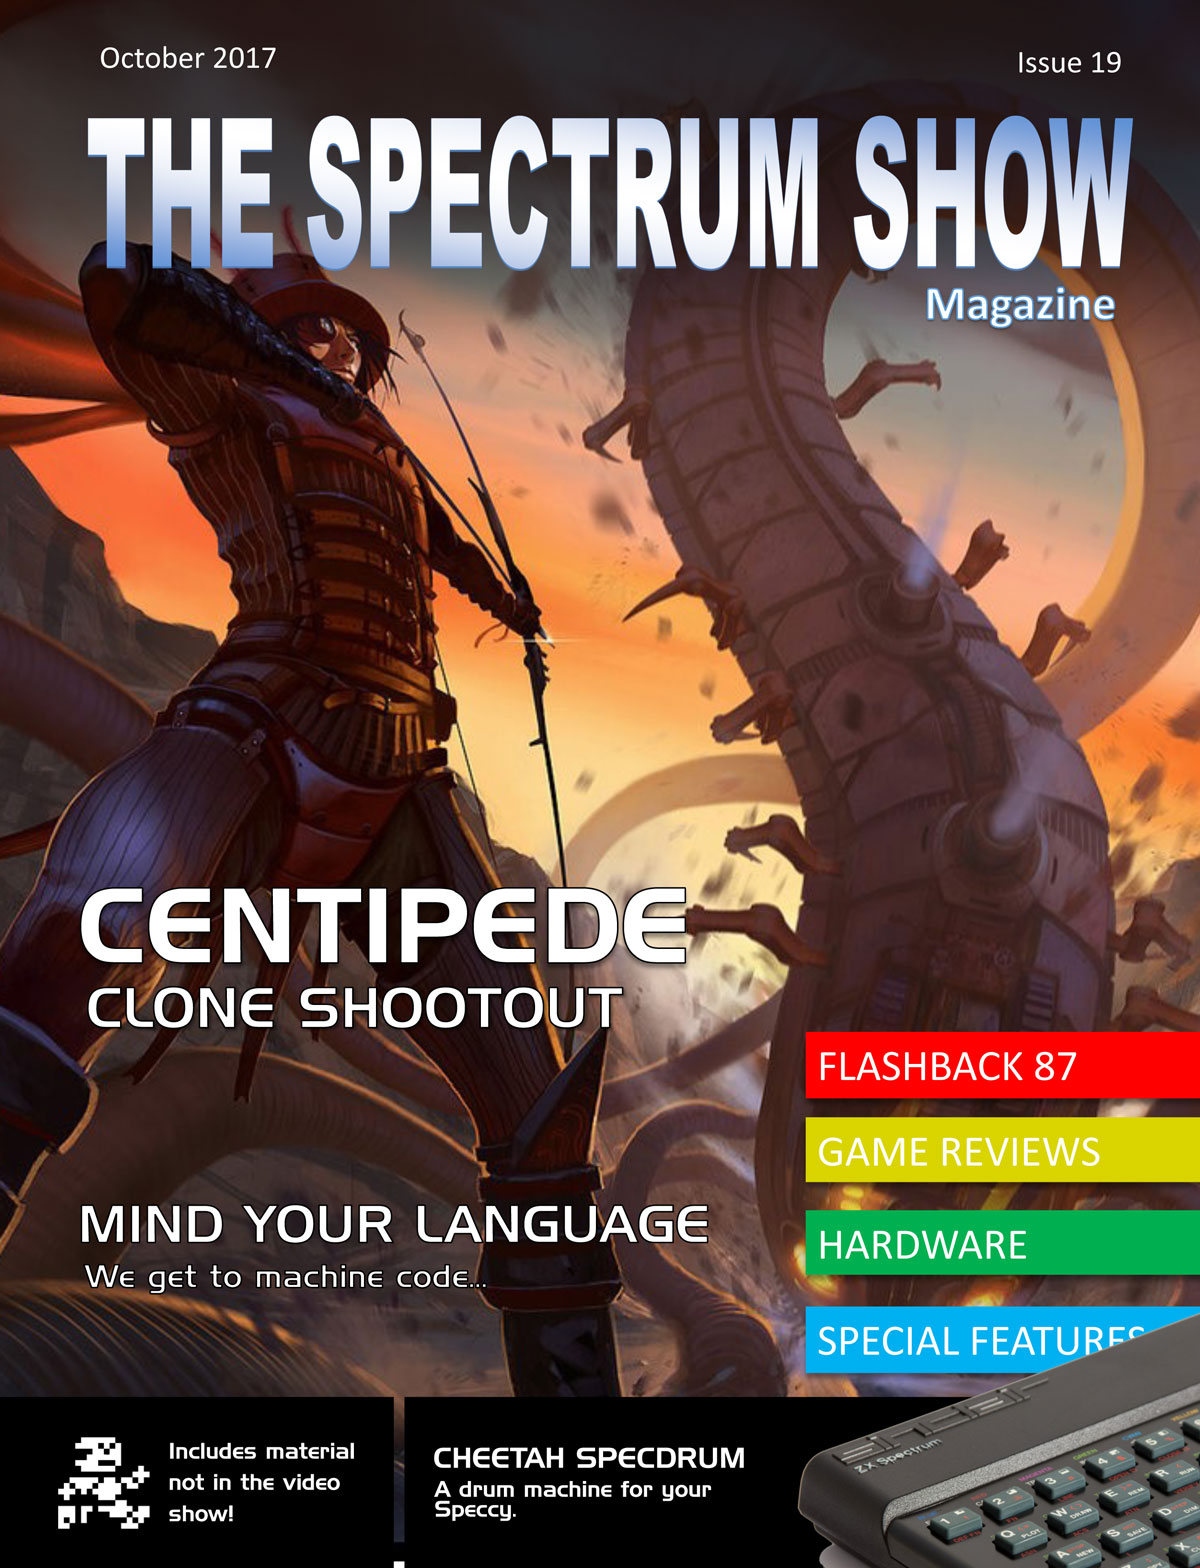 The Spectrum Show Magazine no 19